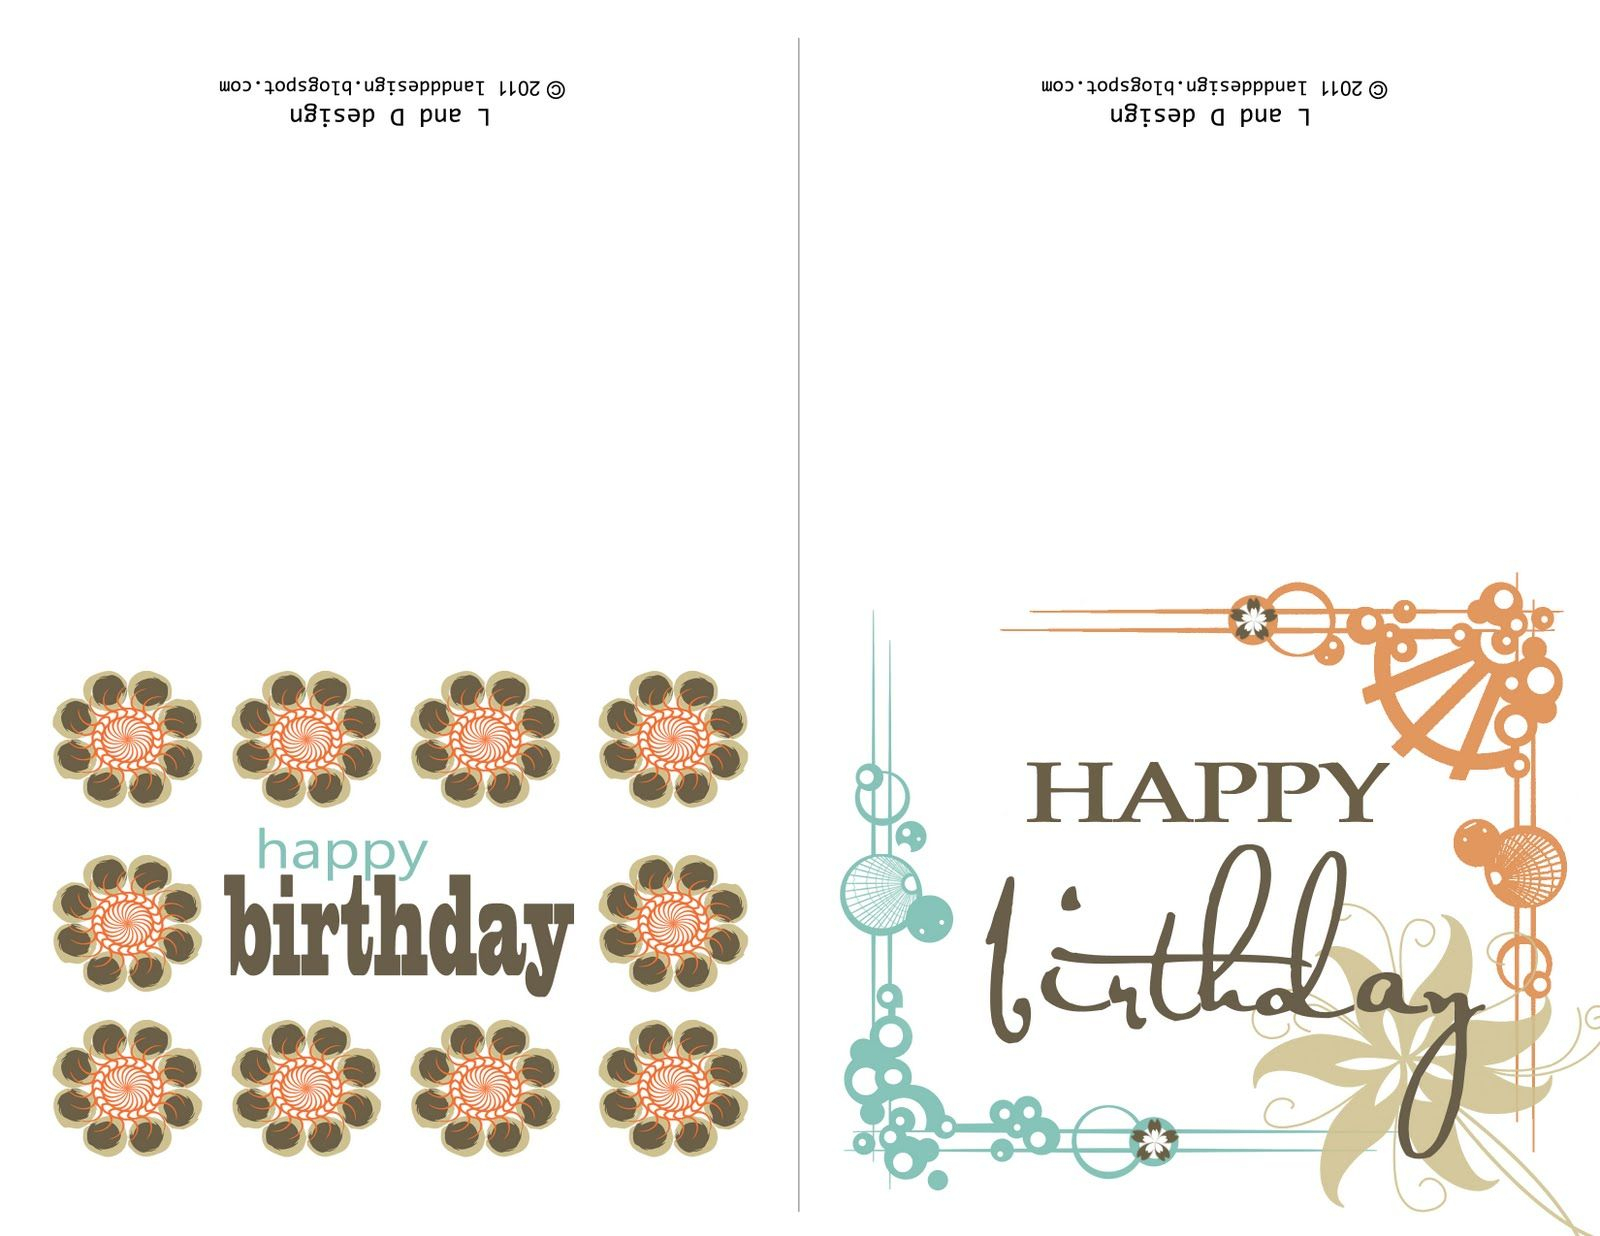 Printable Birthday Cards For Mom | Happy Birthday To You | Pinterest - Free Printable Birthday Cards For Mom